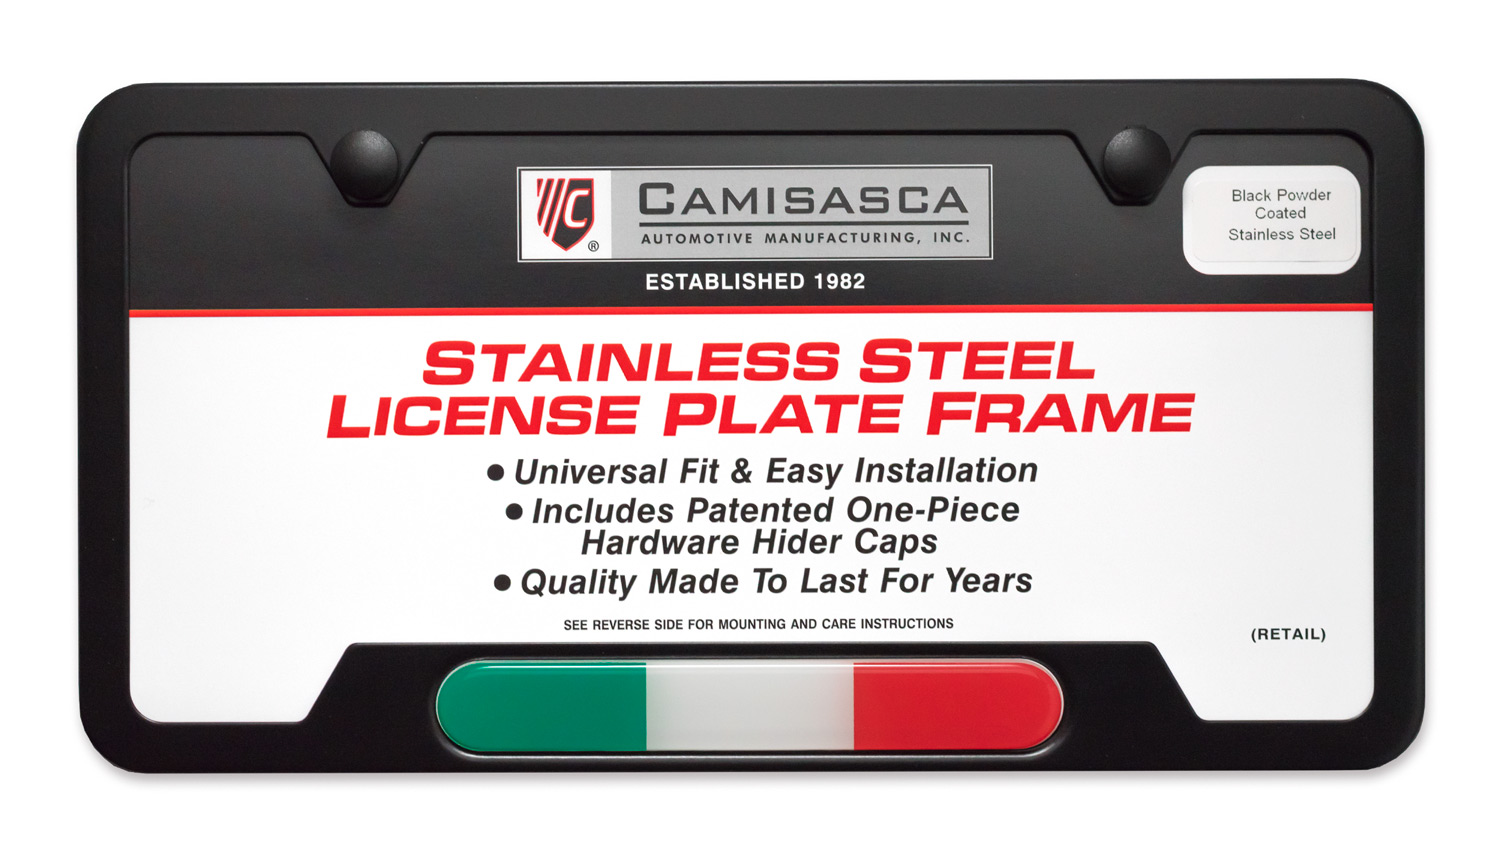 Italian Flag License Plate Frame Camisasca Automotive Online Store